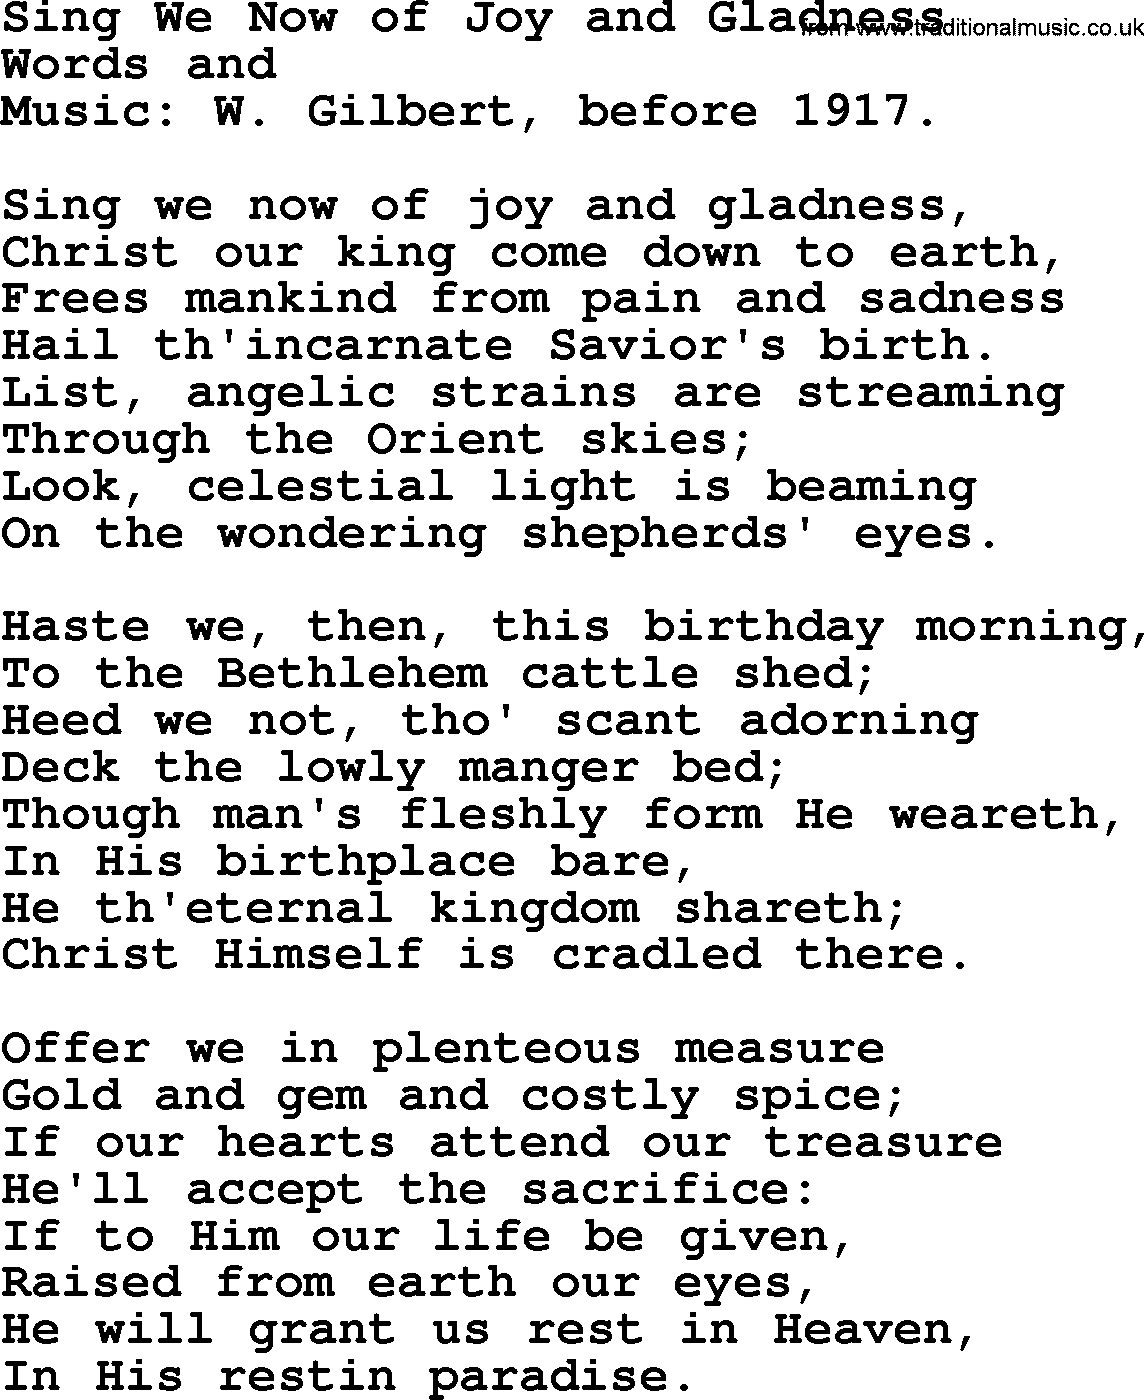 christmas hymns carols and songs title sing we now of joy and gladness